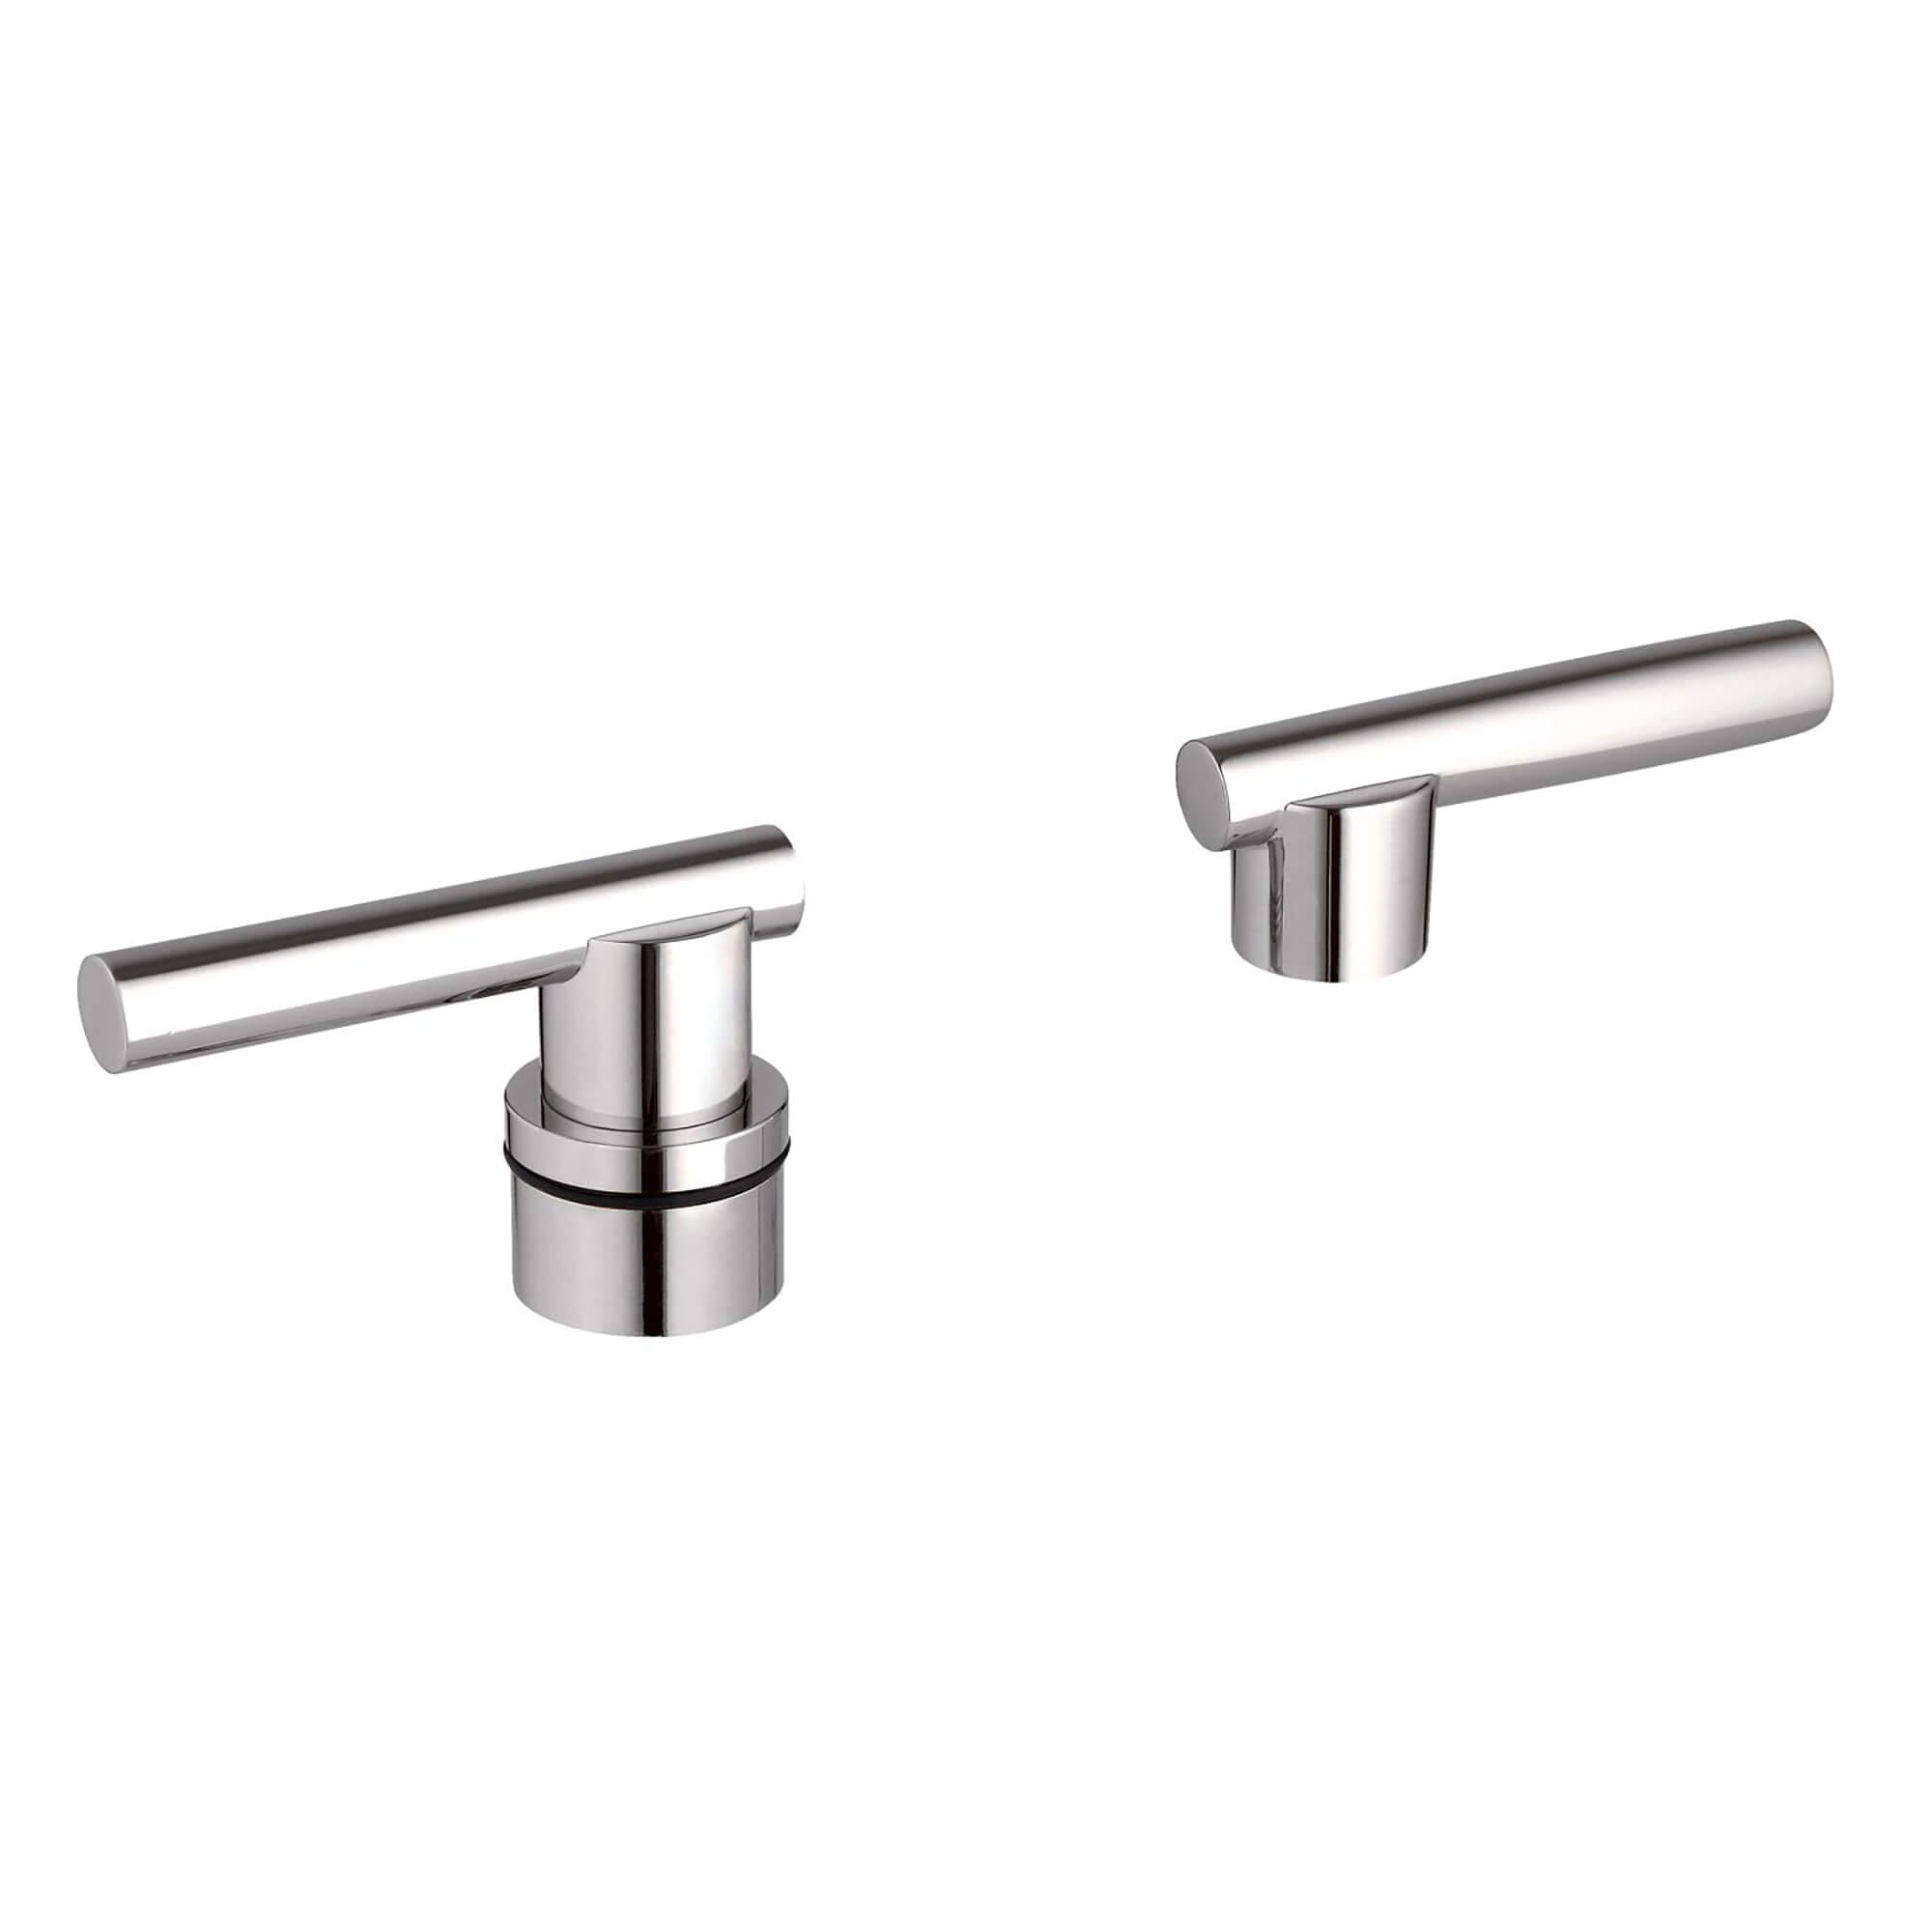 Handles Pair GROHE POLISHED NICKEL